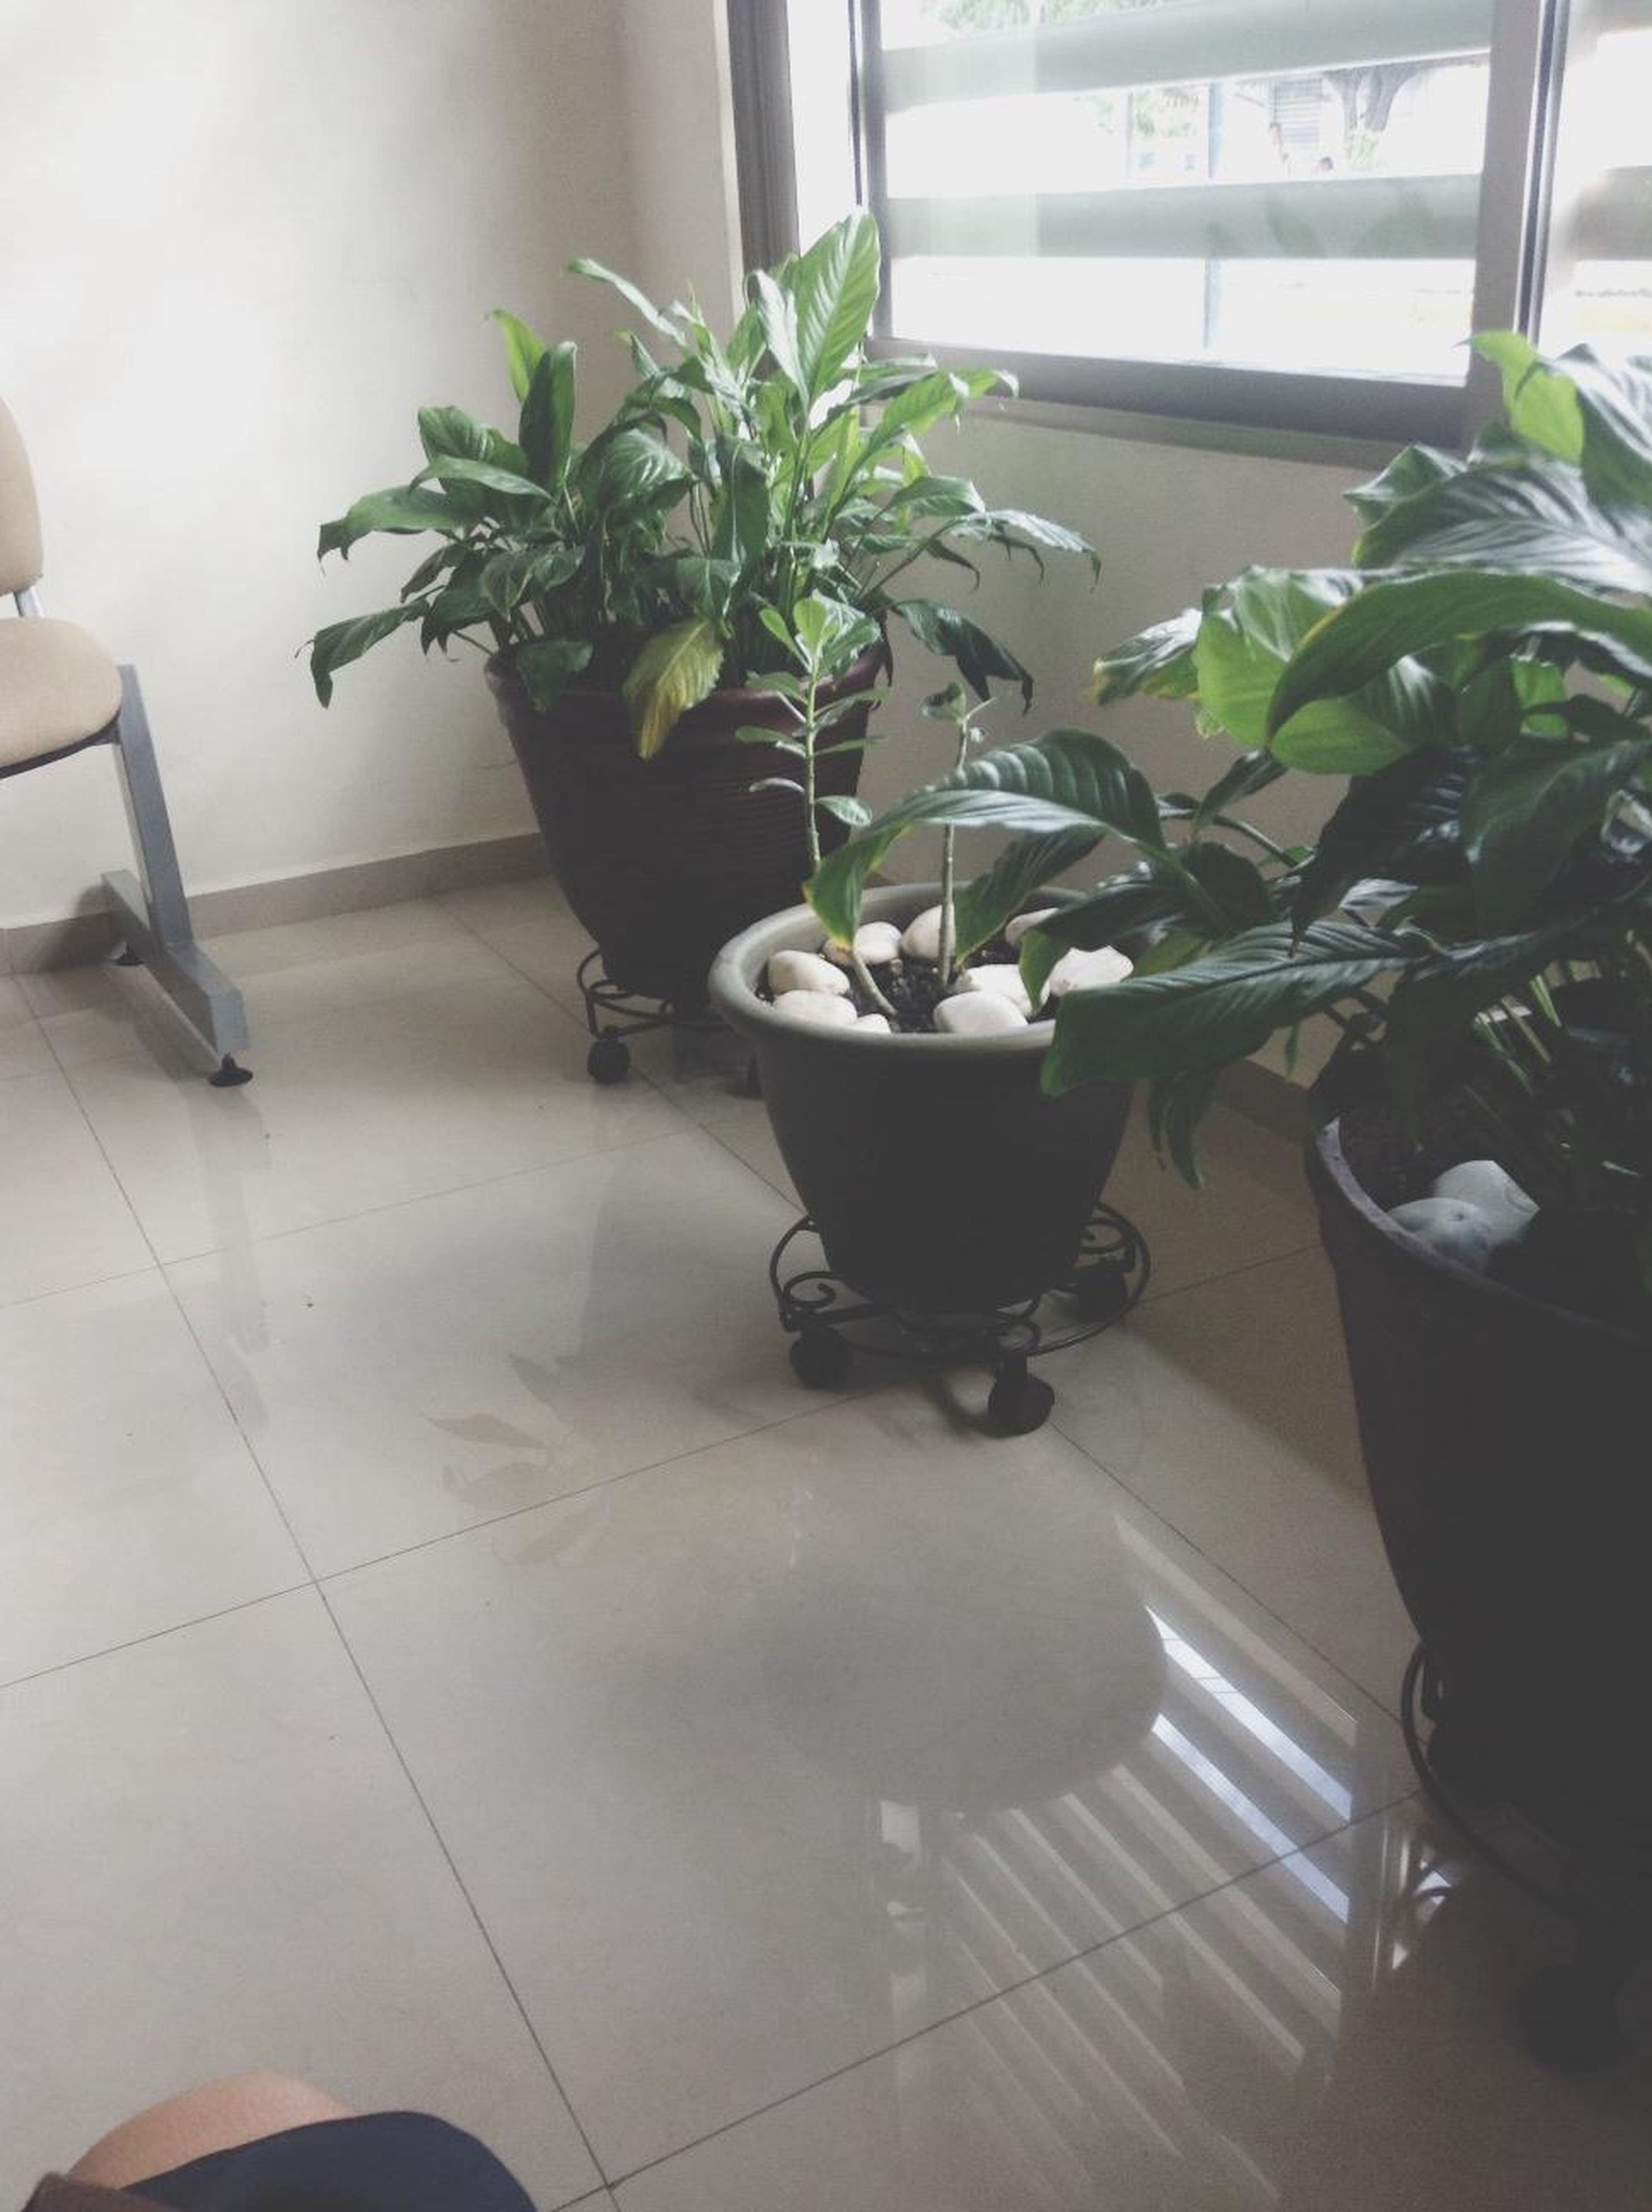 indoors, potted plant, table, chair, plant, tiled floor, home interior, flooring, growth, vase, window, pot plant, high angle view, flower pot, sunlight, domestic room, green color, floor, absence, leaf